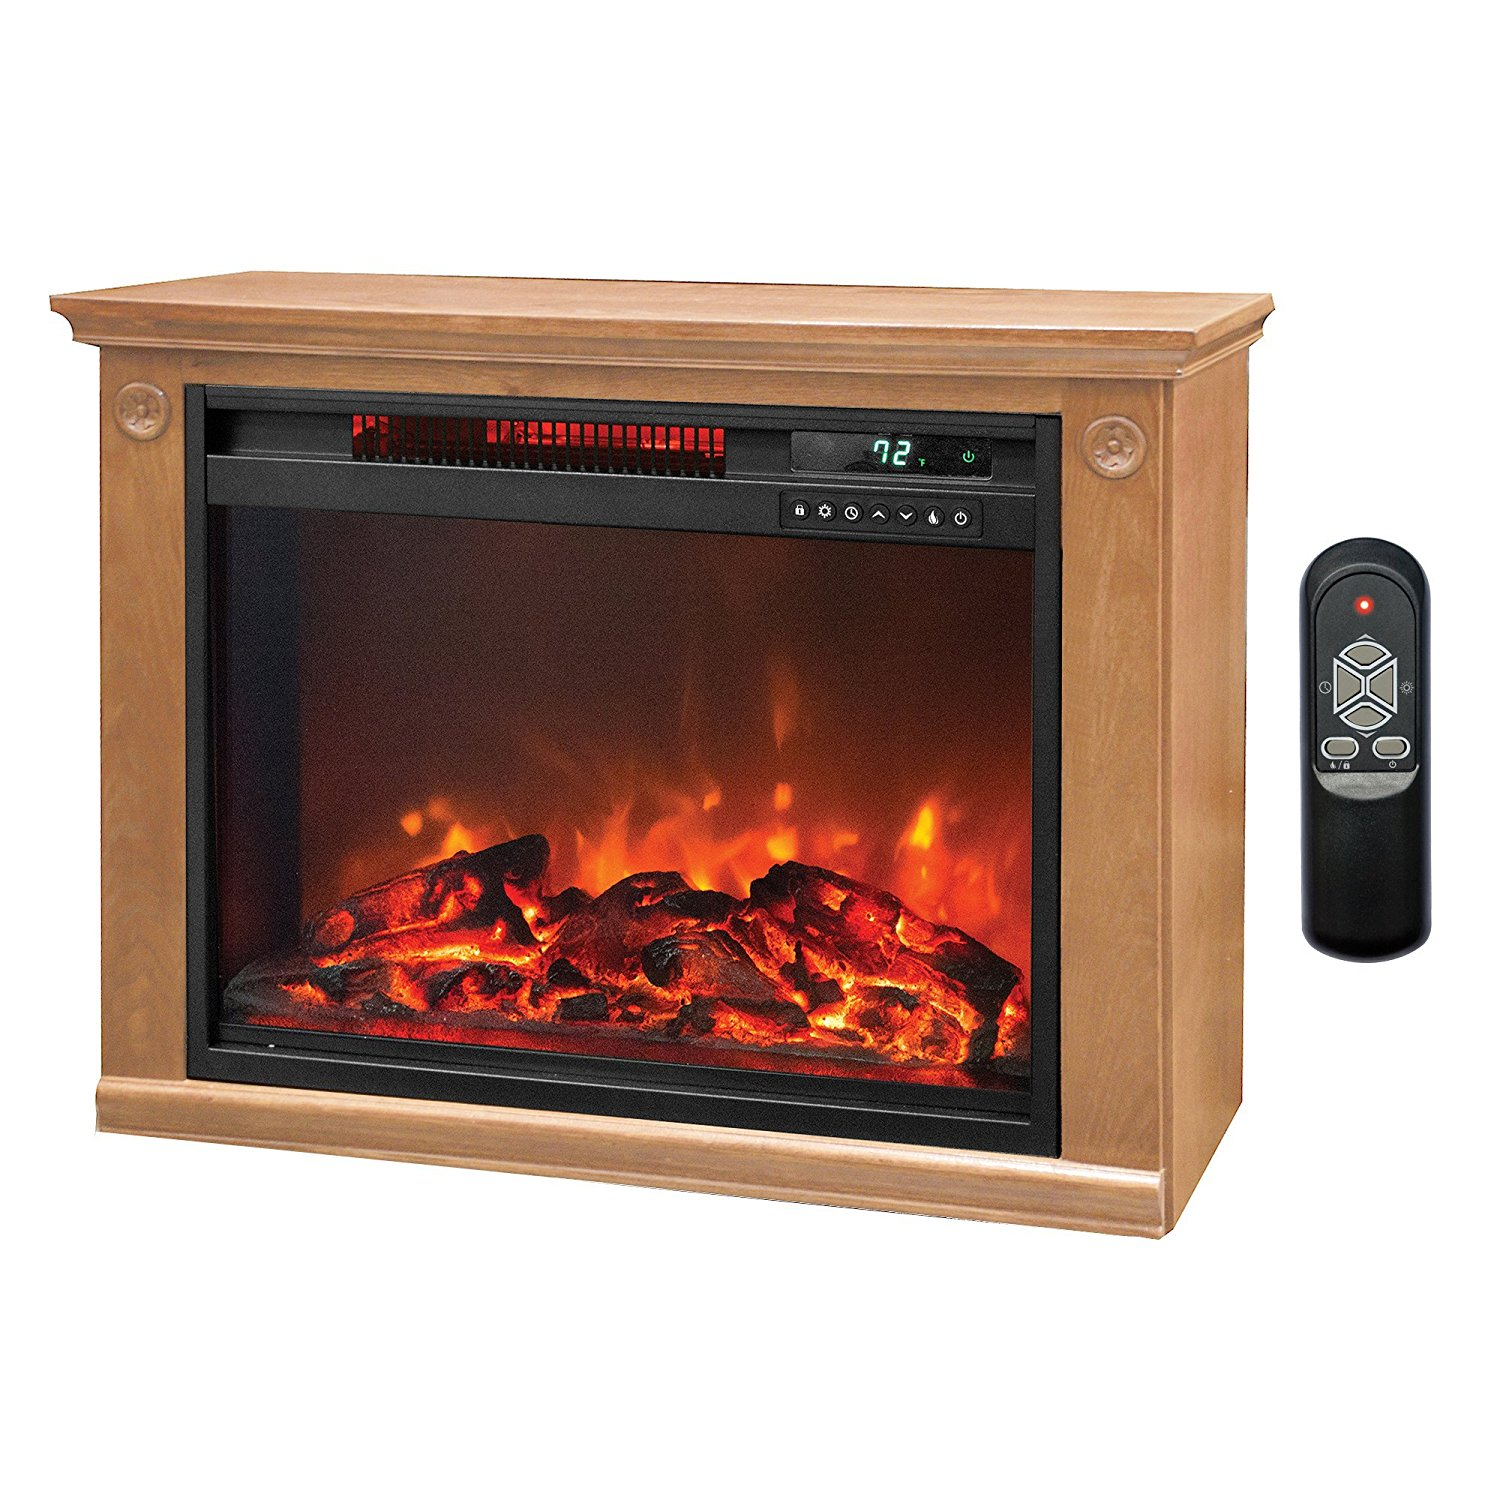 LifePro Electric Infrared Fireplace Heater